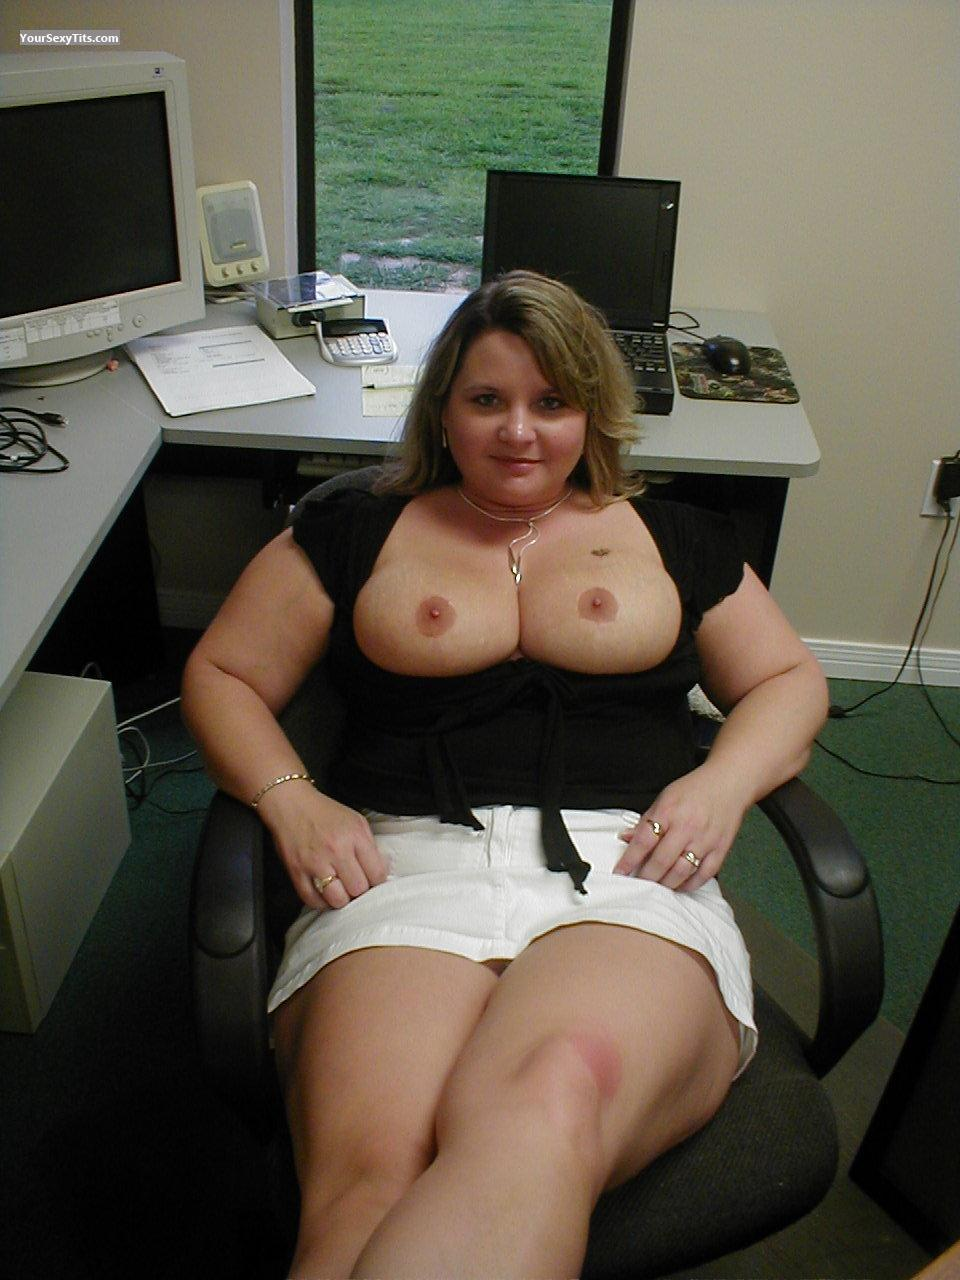 big tits at work indian Search - XVIDEOSCOM